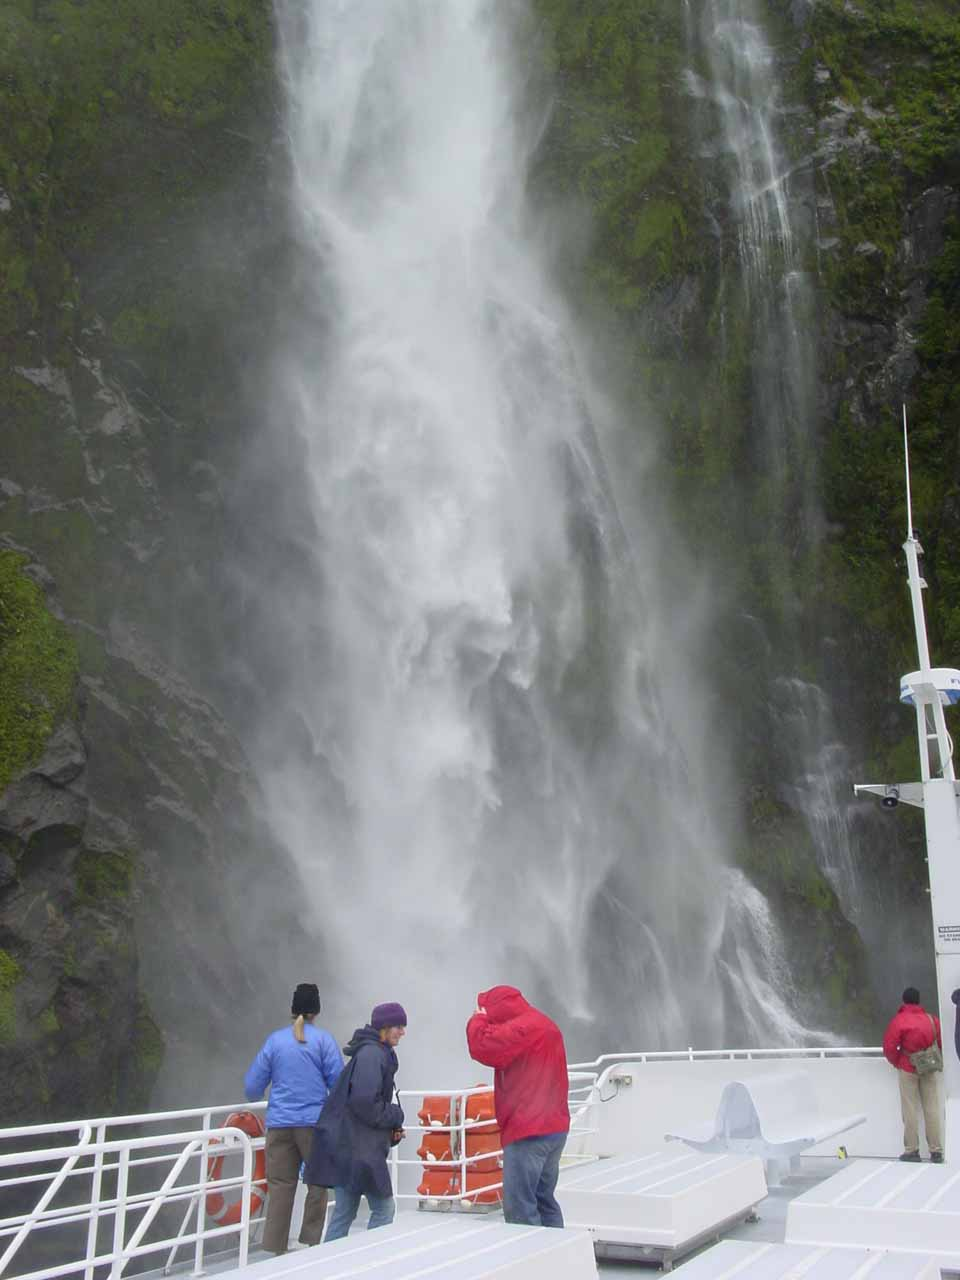 Some people were preparing to get wet as our 2004 cruise vessel was approaching Stirling Falls